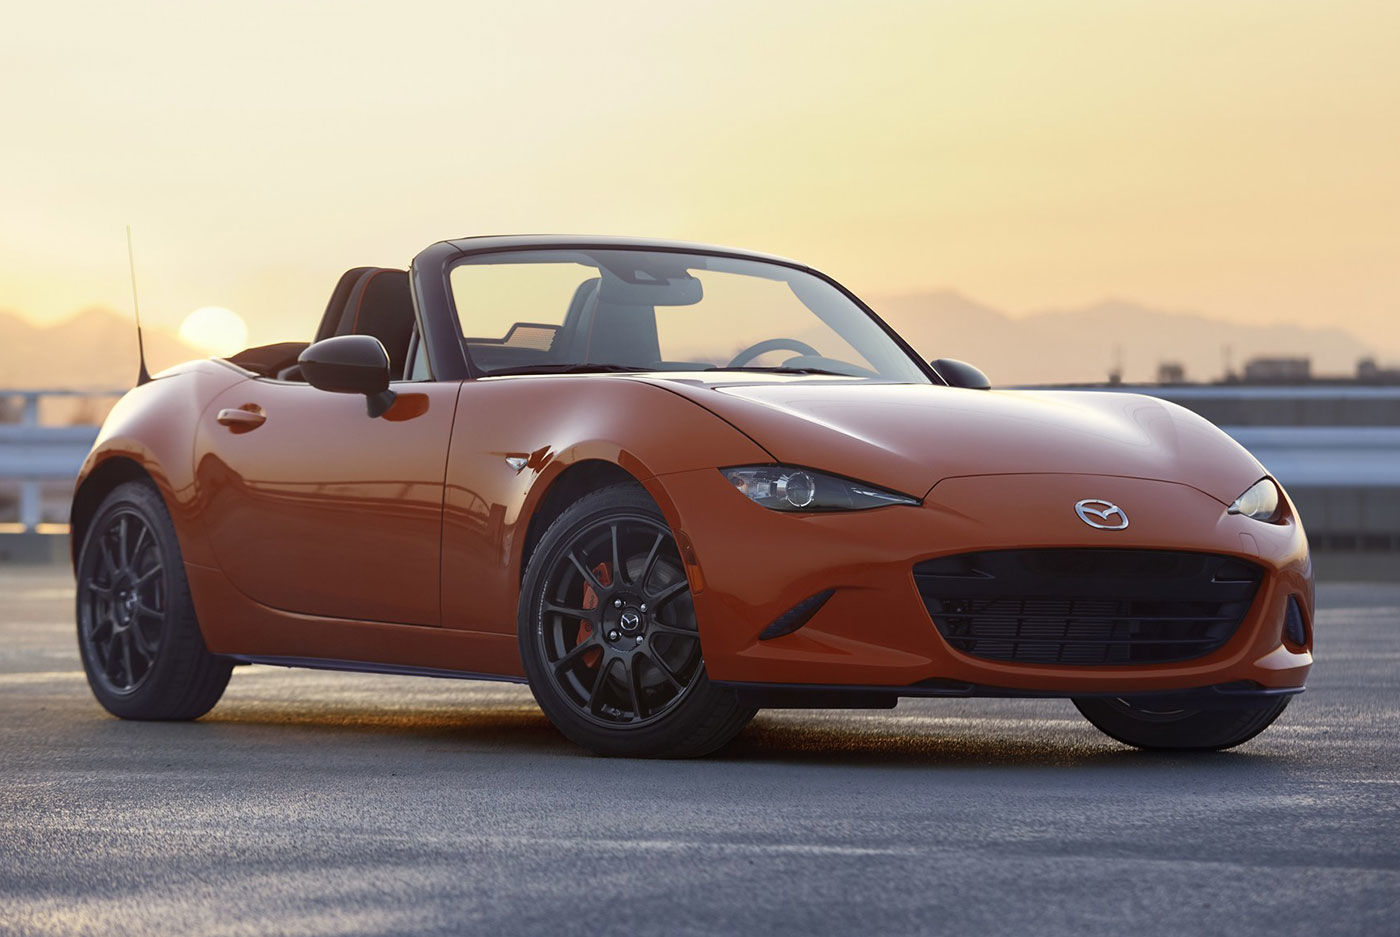 30th Anniversary Special Edition for the Mazda MX-5